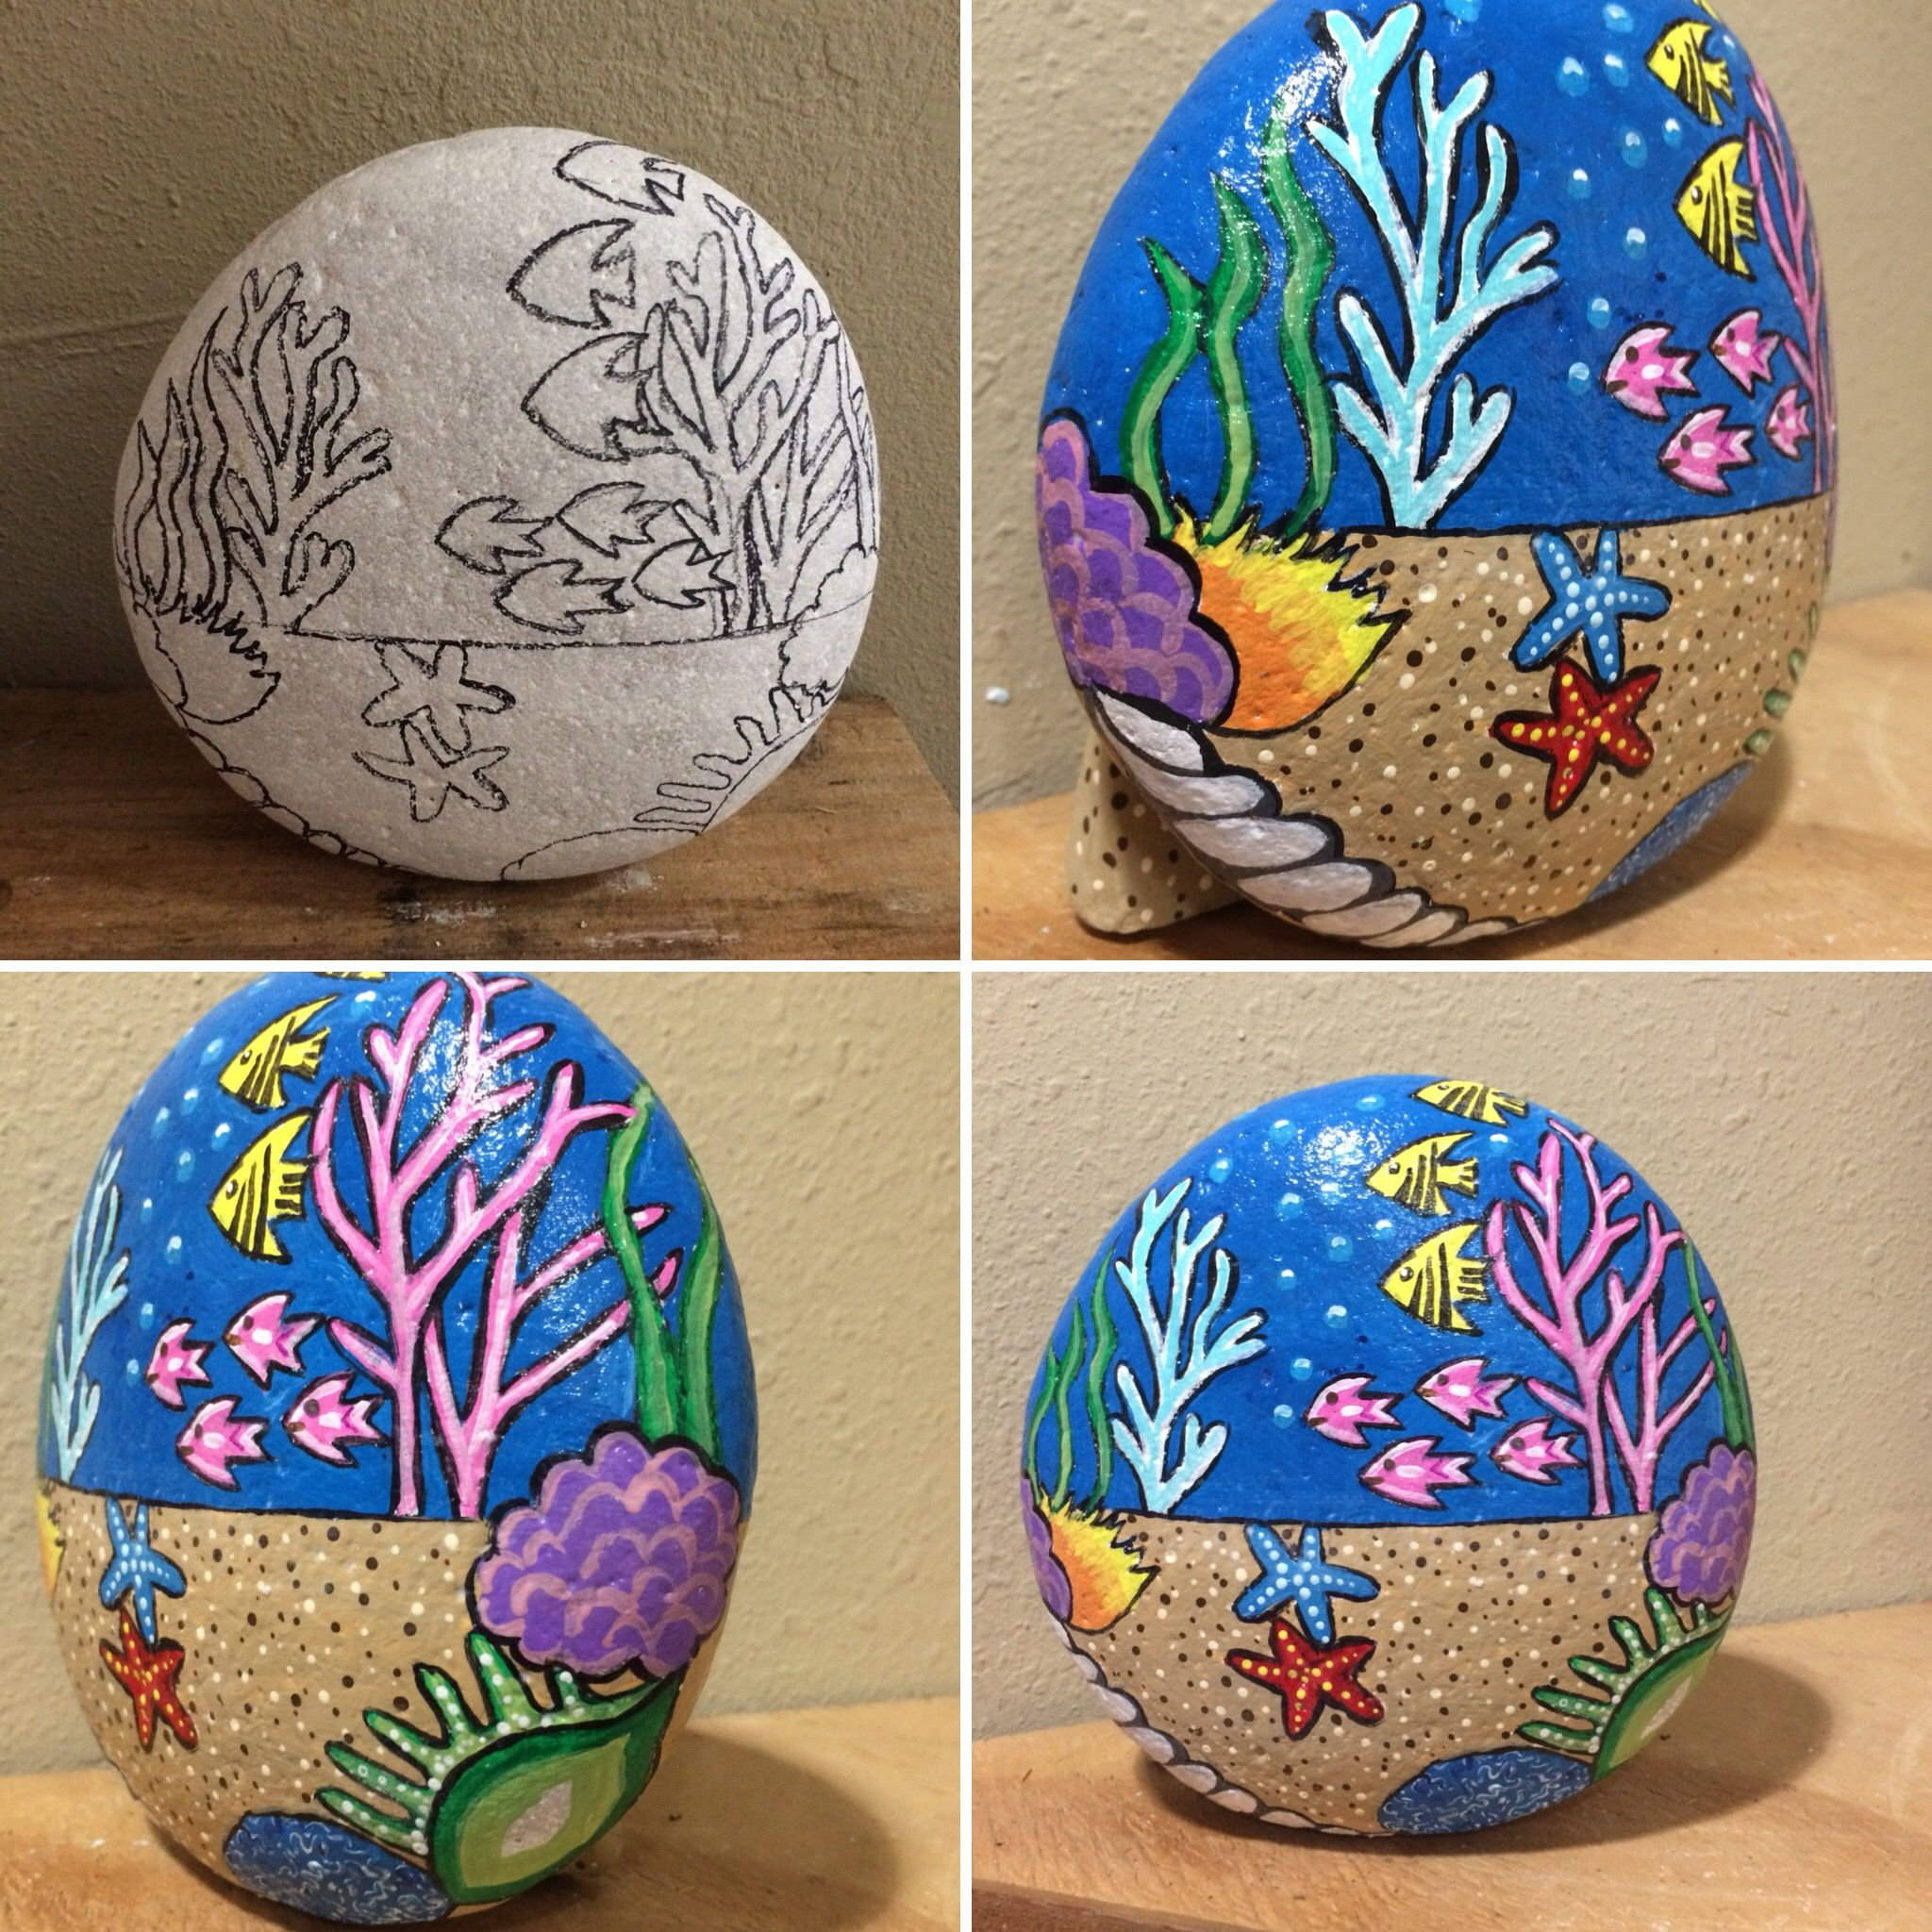 Using Pencil Outlining To Rough Out Design Elements Rock Painting Designs Rock Crafts Painted Rocks